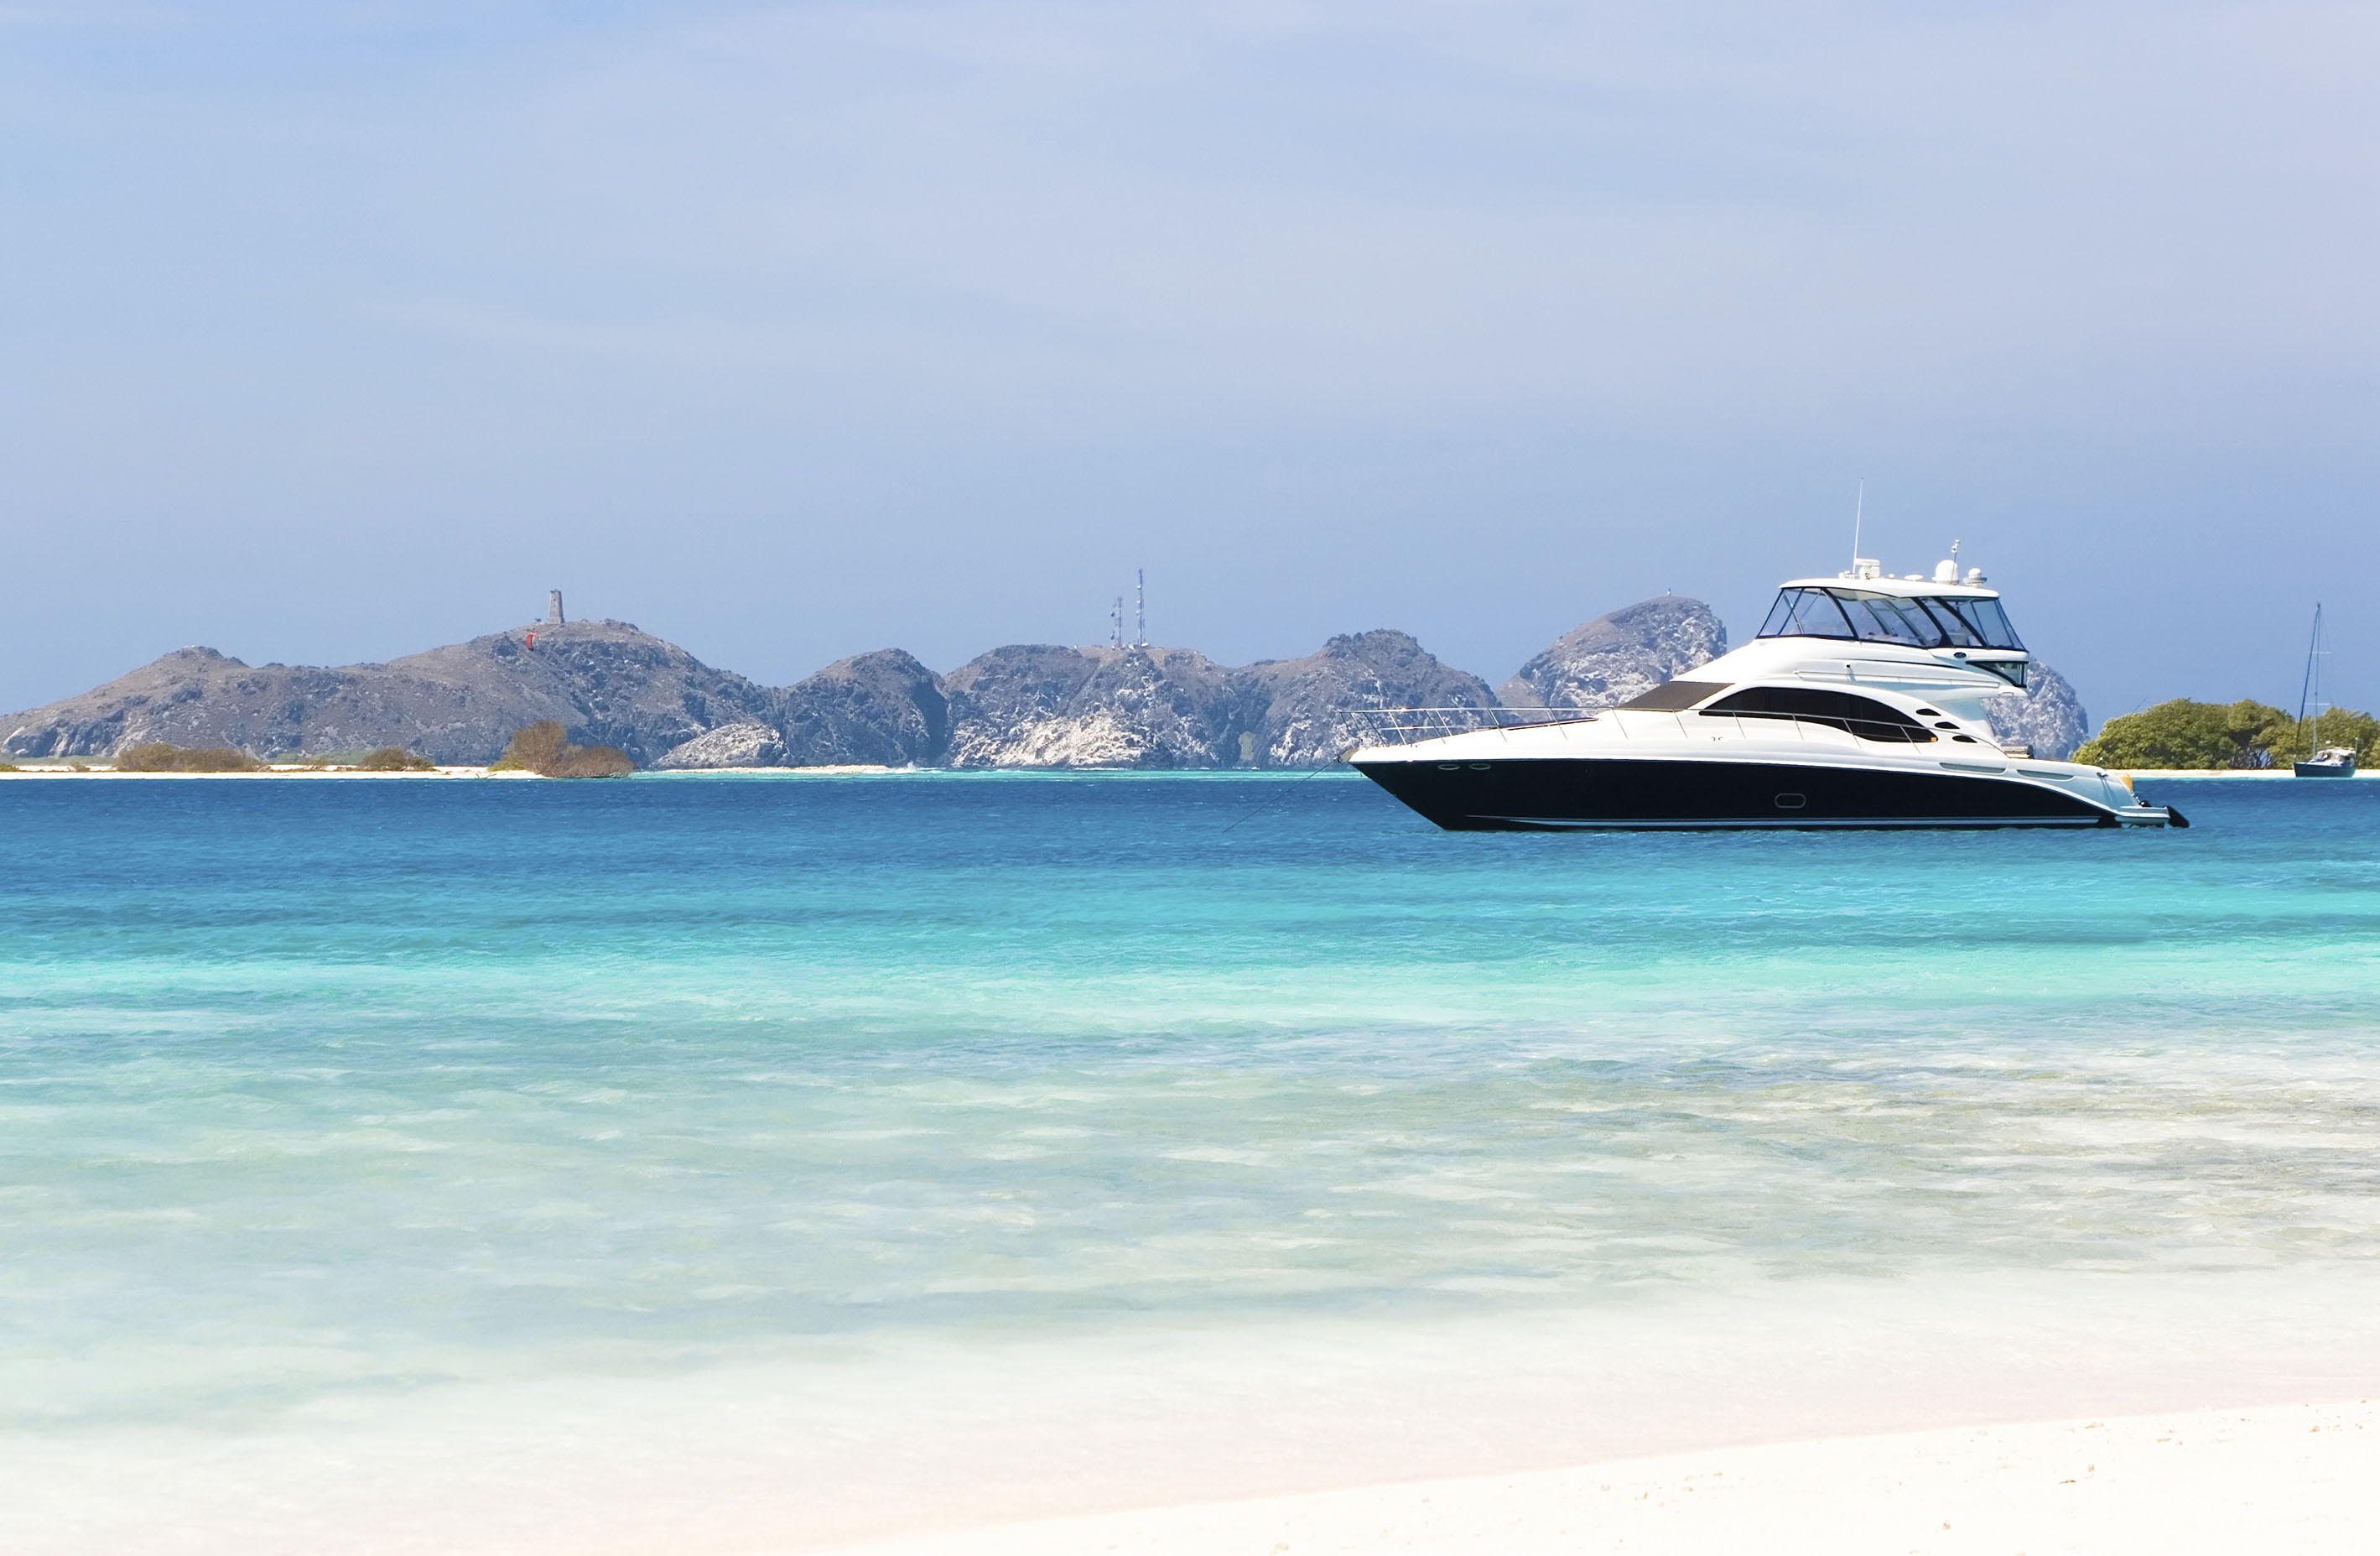 Motor yacht at anchor in the Caribbean